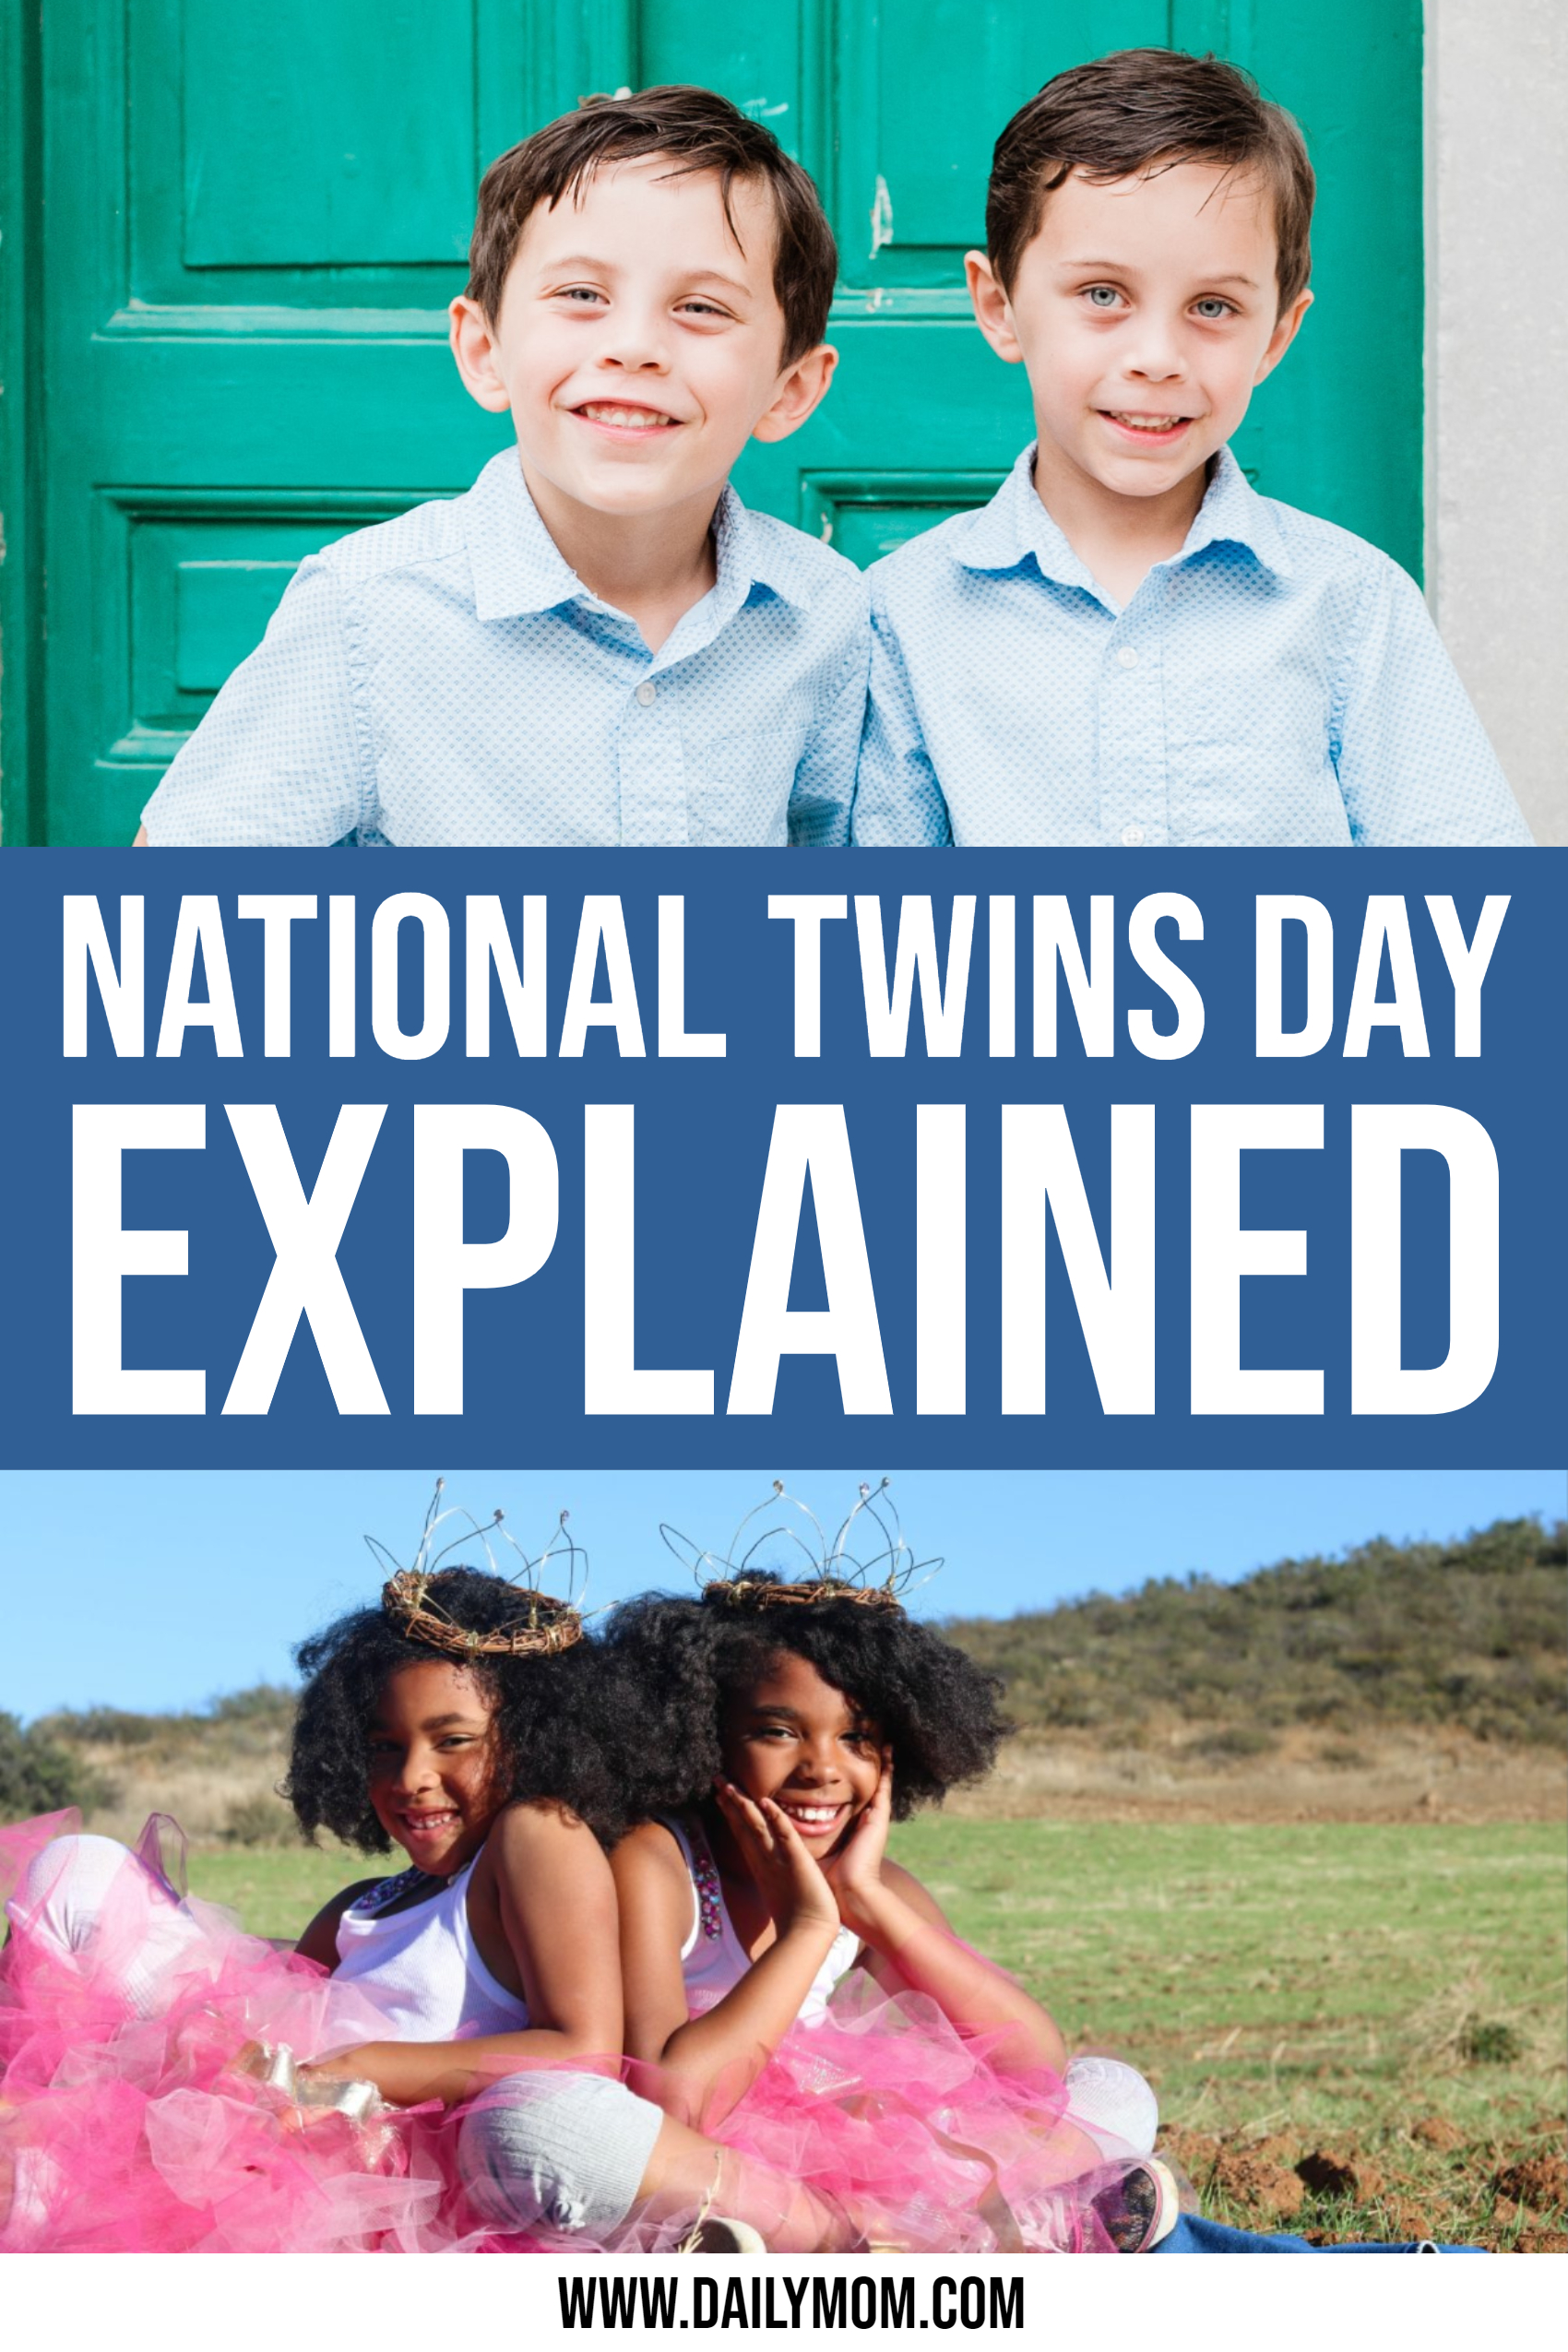 National Twins Day Explained